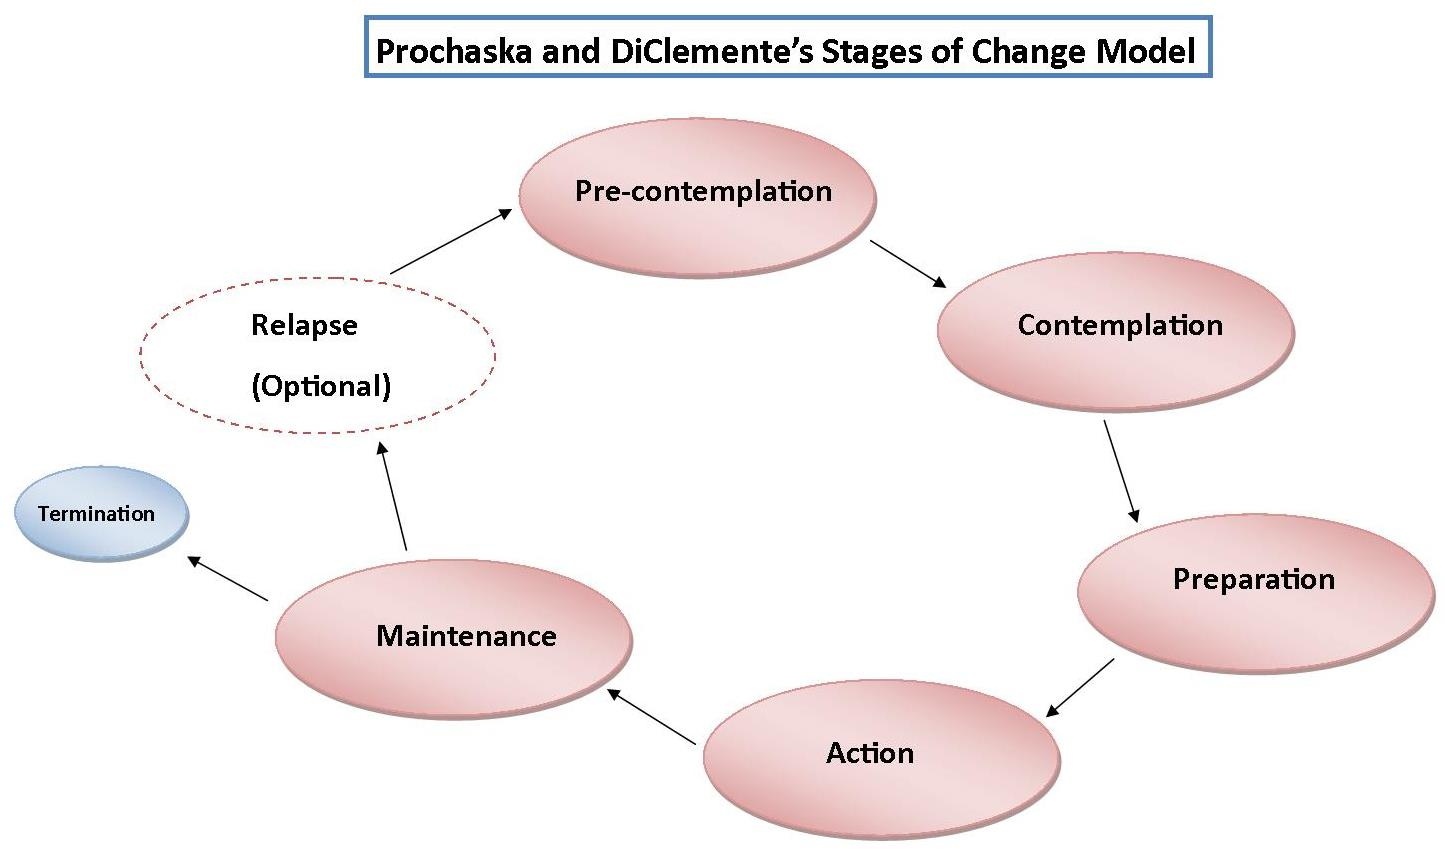 Facing Addictions - The Stages of Change - Light Life Learning